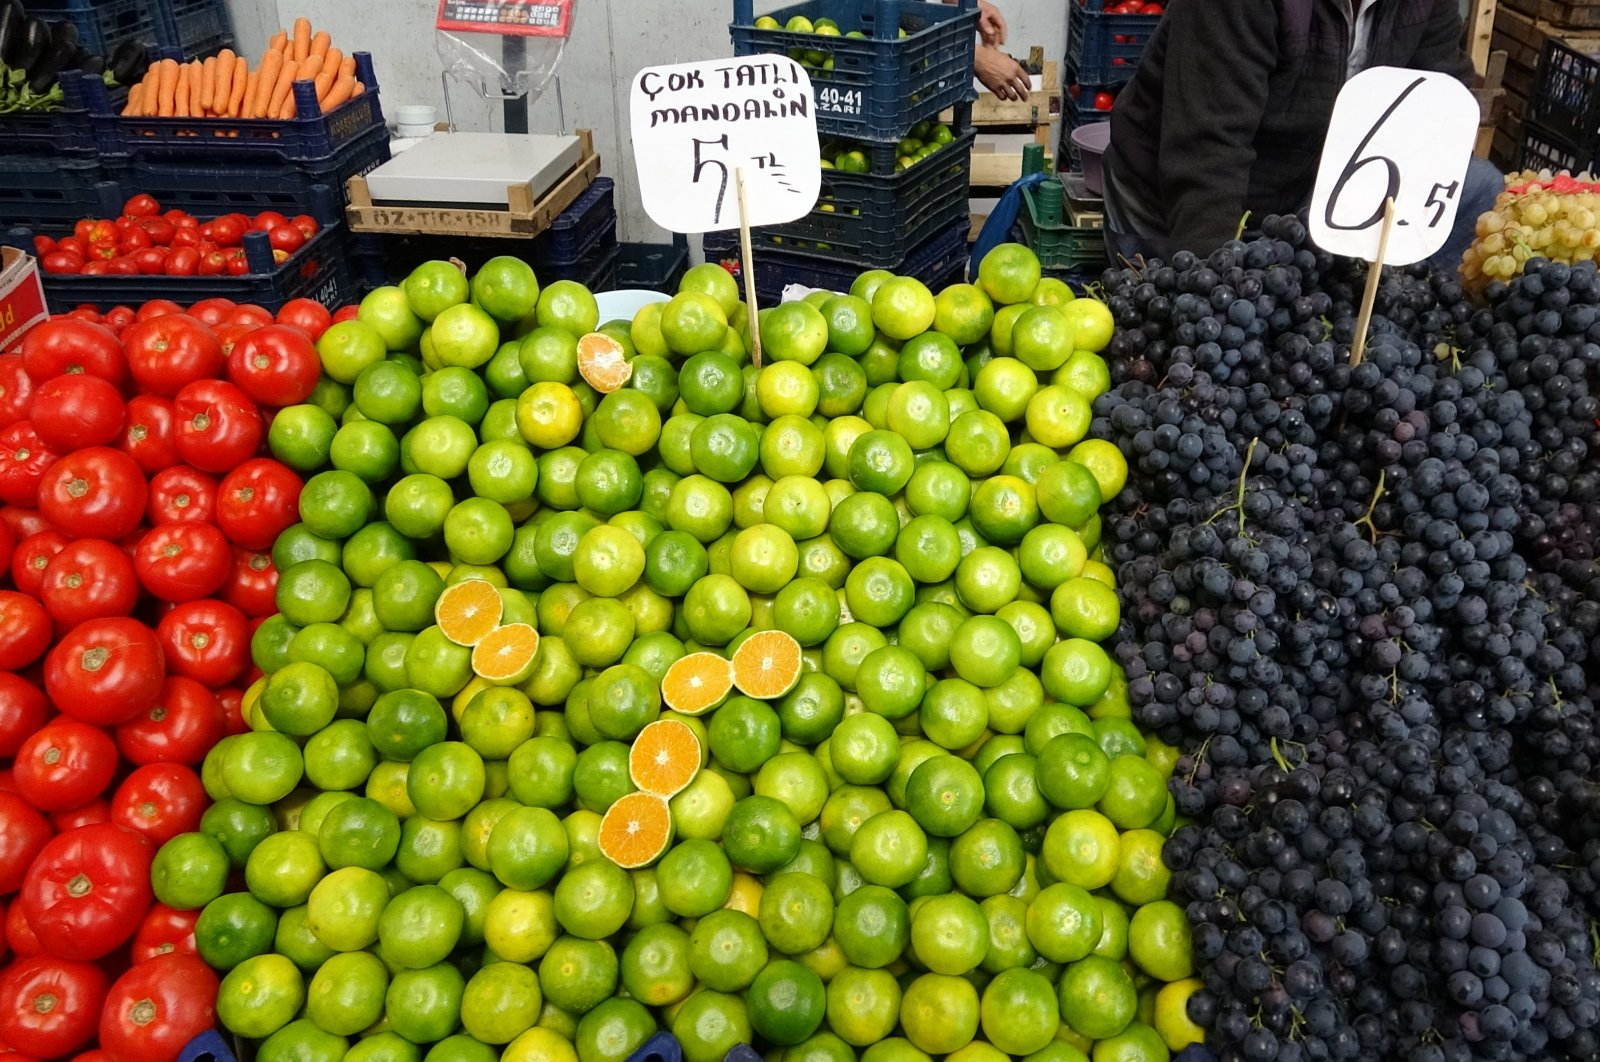 Fruit and vegetables for sale at a local market in Zonguldak, northwestern Turkey, Oct. 2, 2021. (IHA Photo)